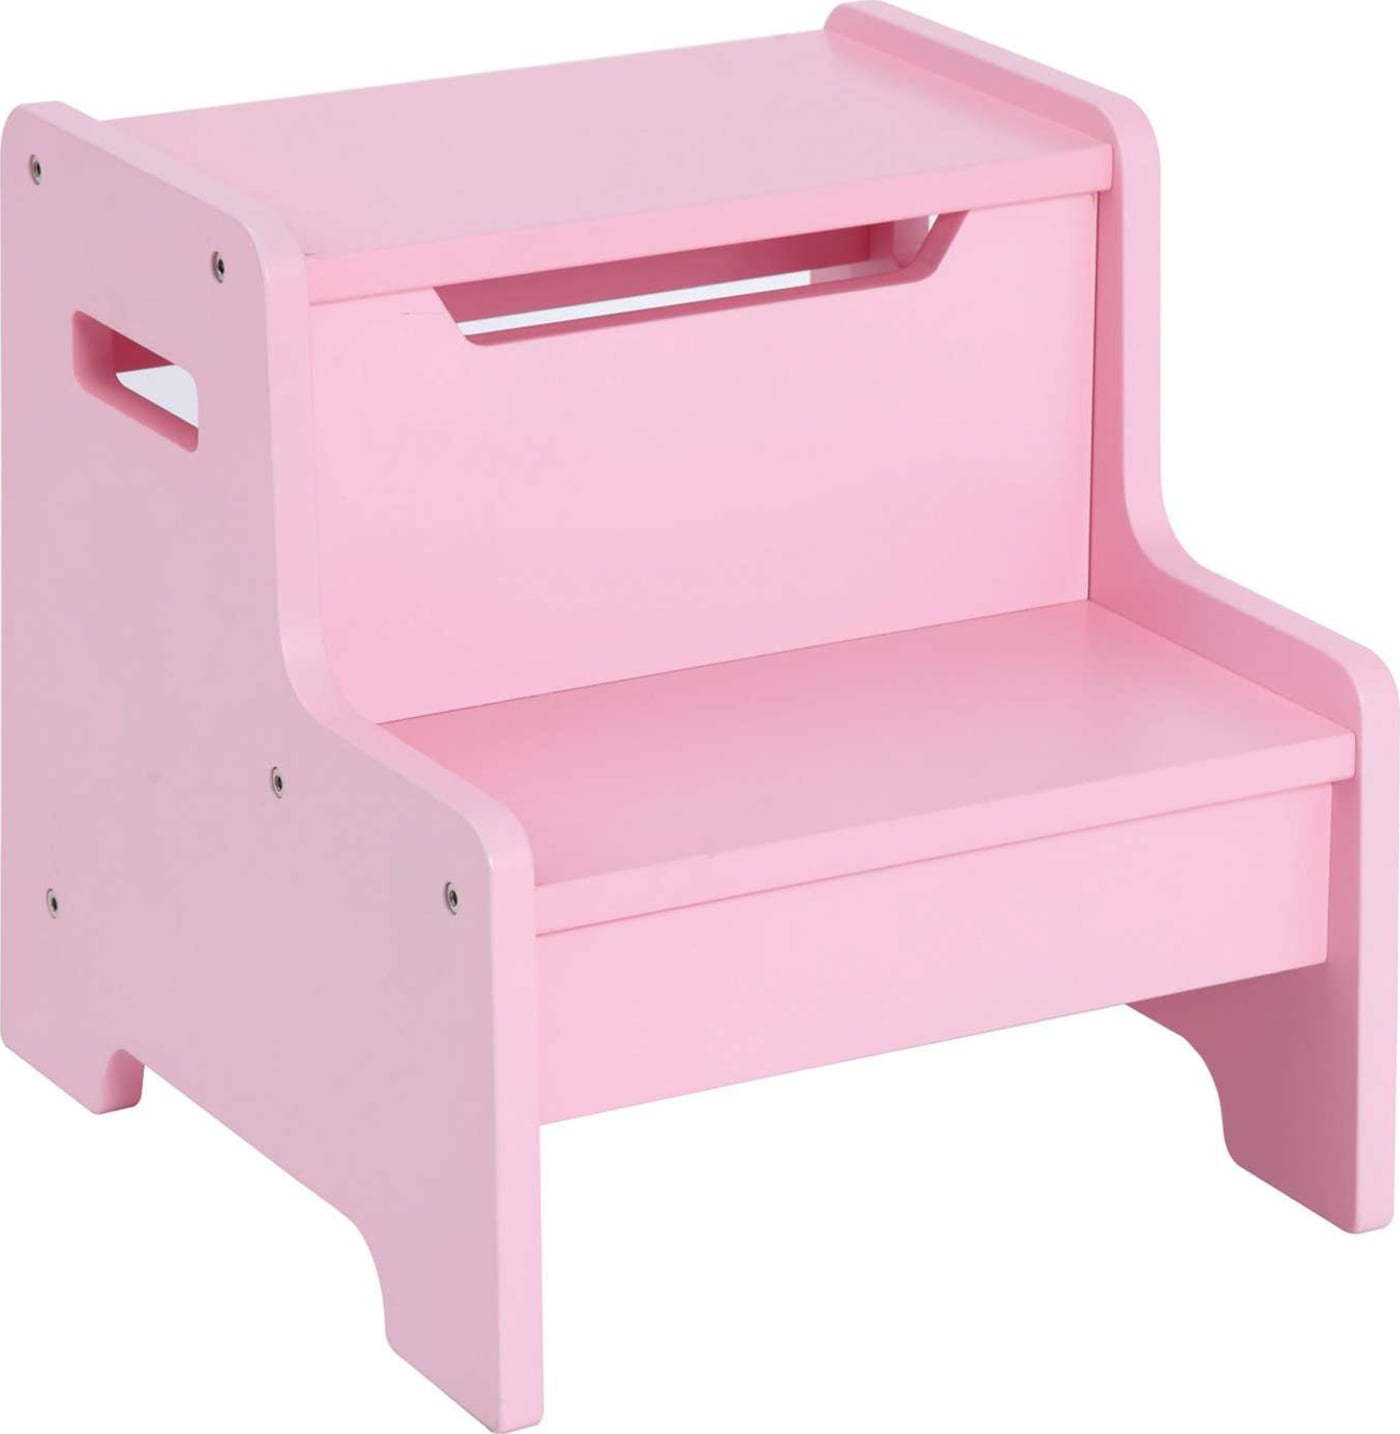 Guidecraft Pink Expressions Step Stool Amp Reviews